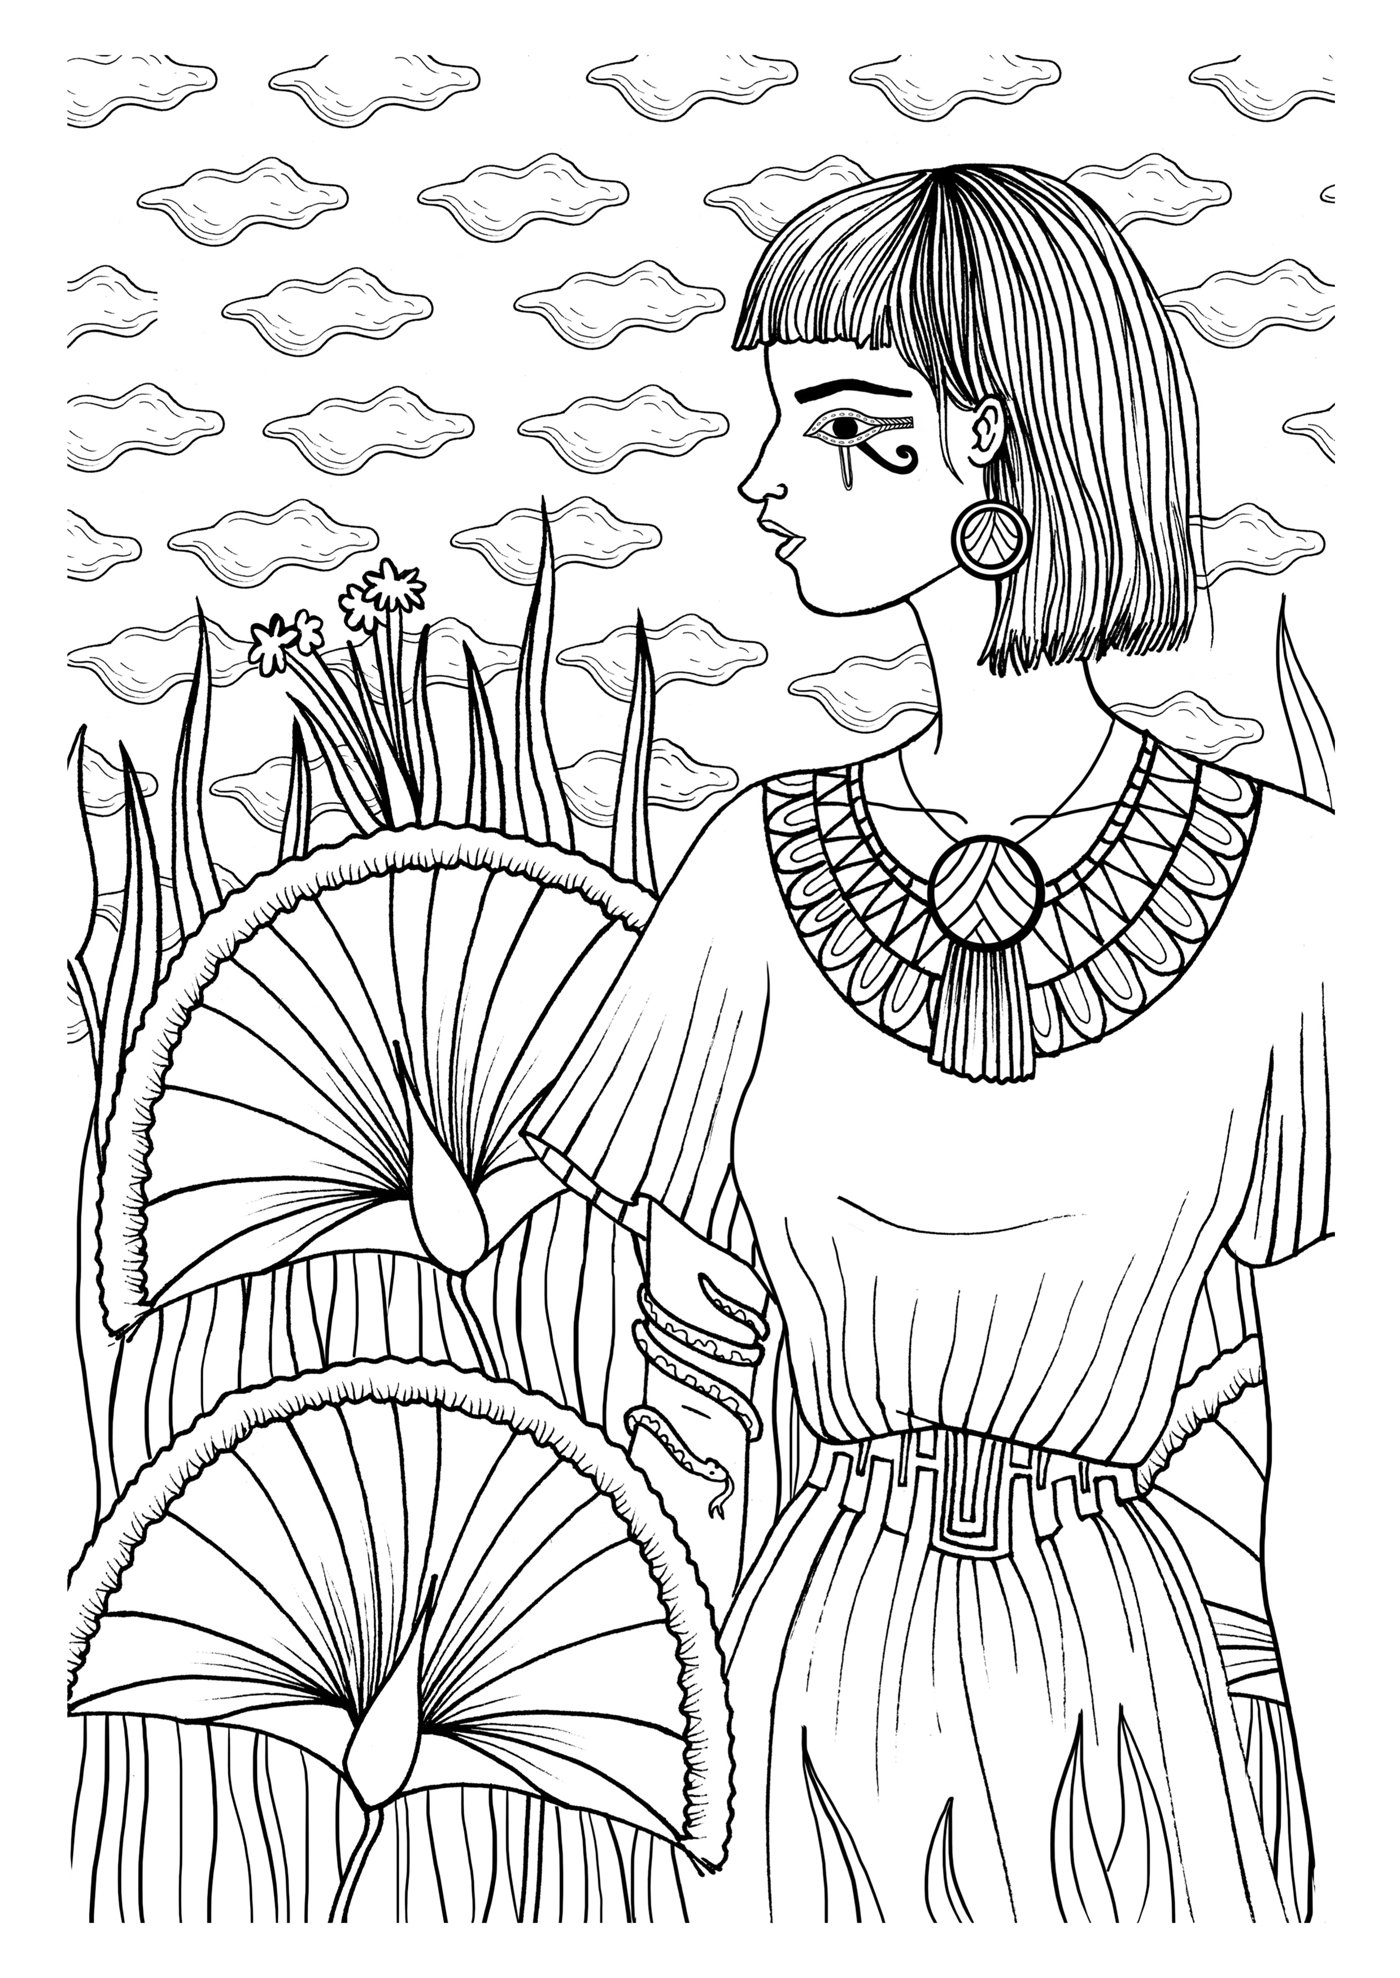 E T Coloring Book | Coloring Pages